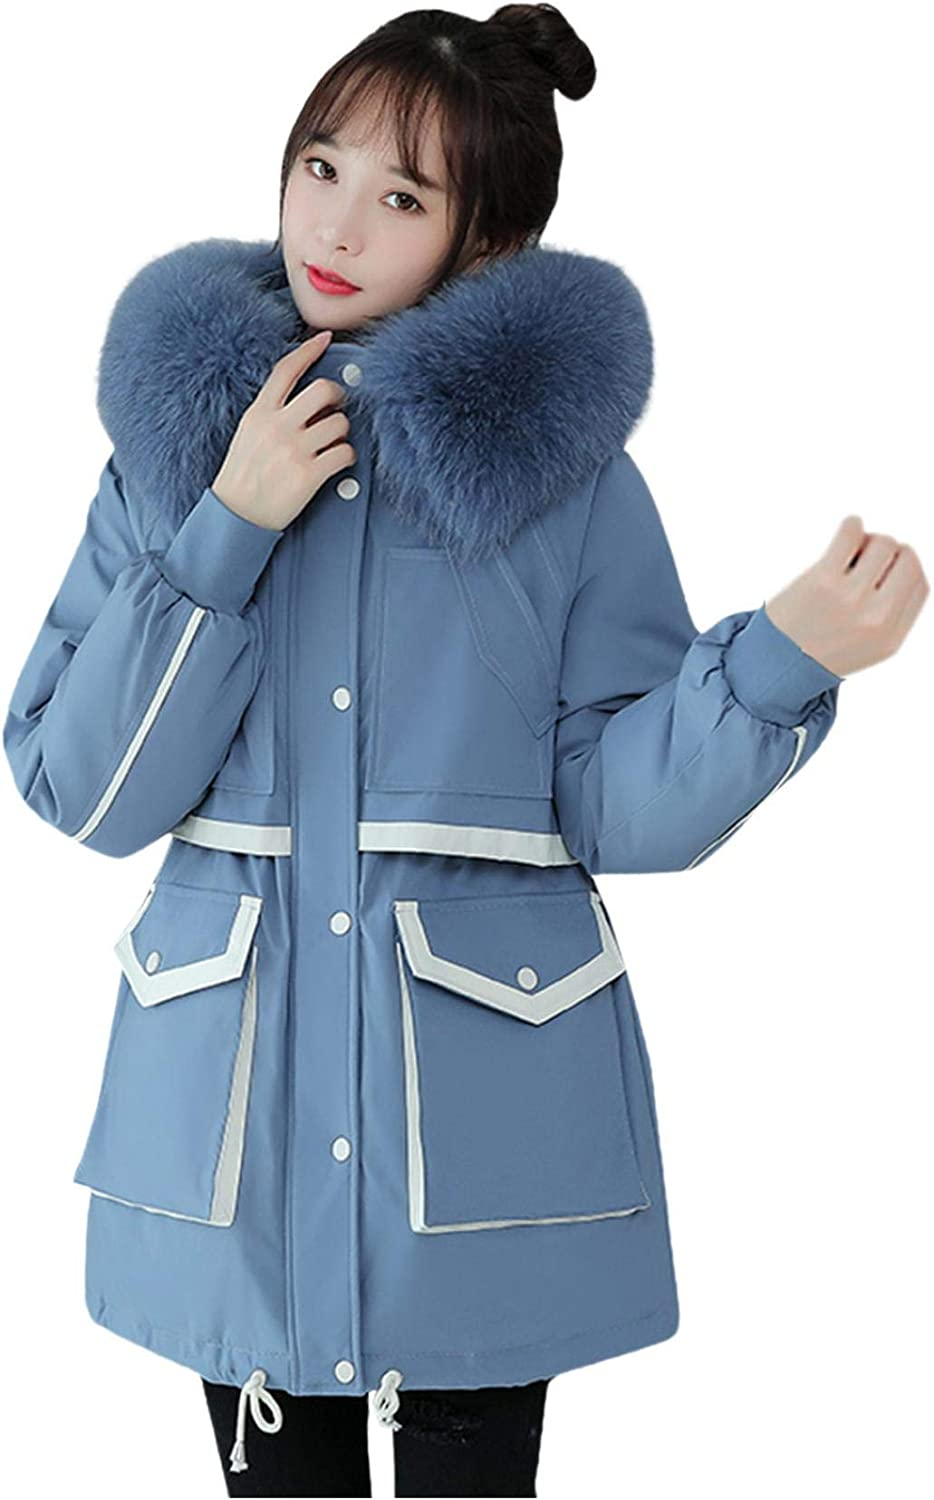 Smileyth Women Winter Long Sleeve Hooded Coat Faux Fur Collar Drawstring Waist Warm Thickened Jacket Outerwear